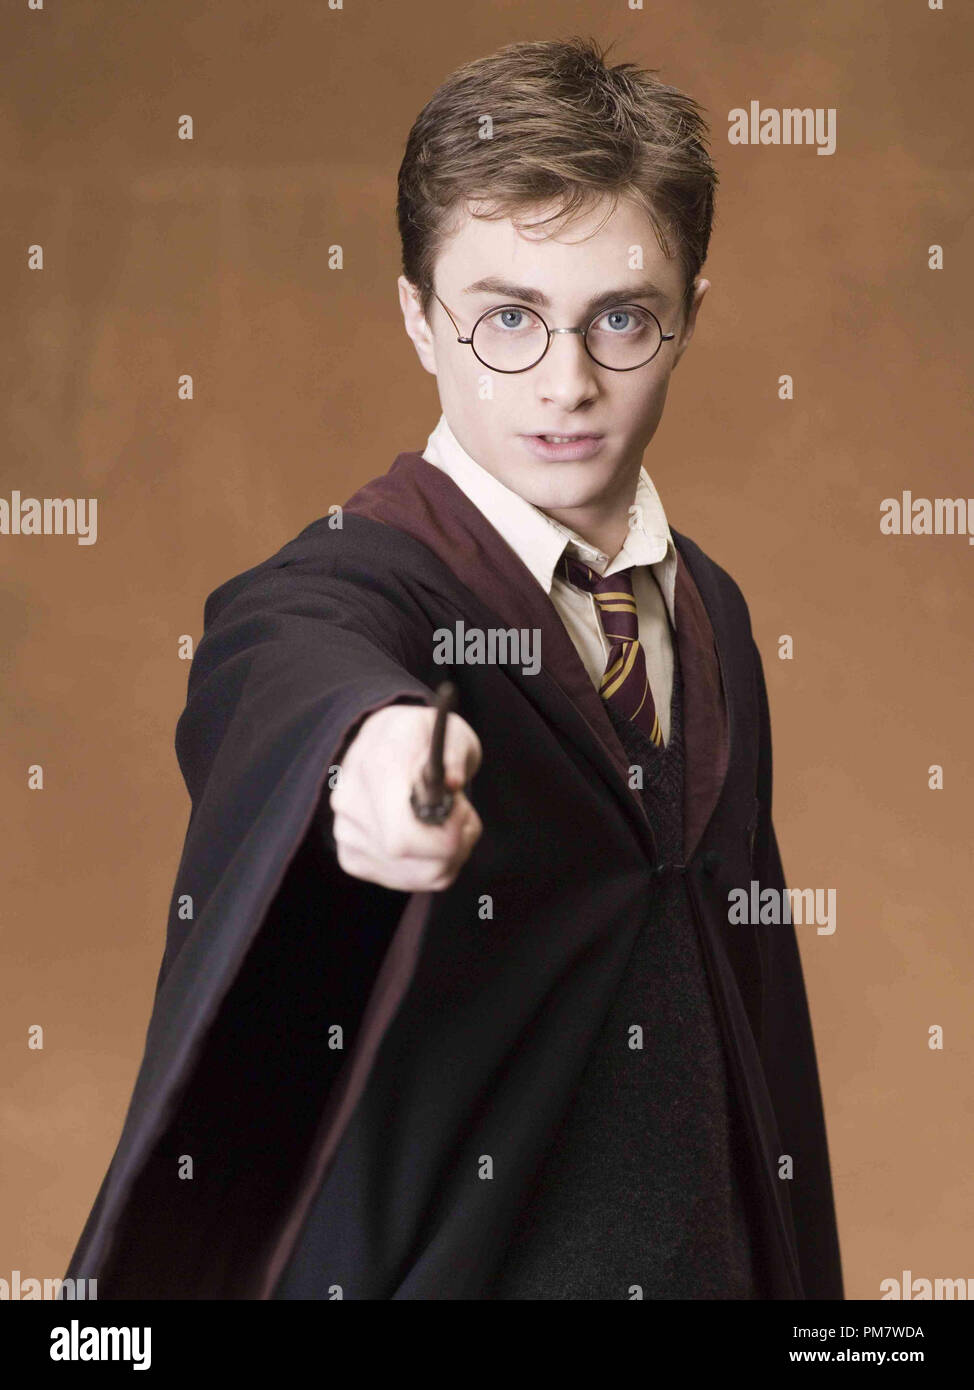 Harry Potter Movie Still High Resolution Stock Photography And Images Alamy